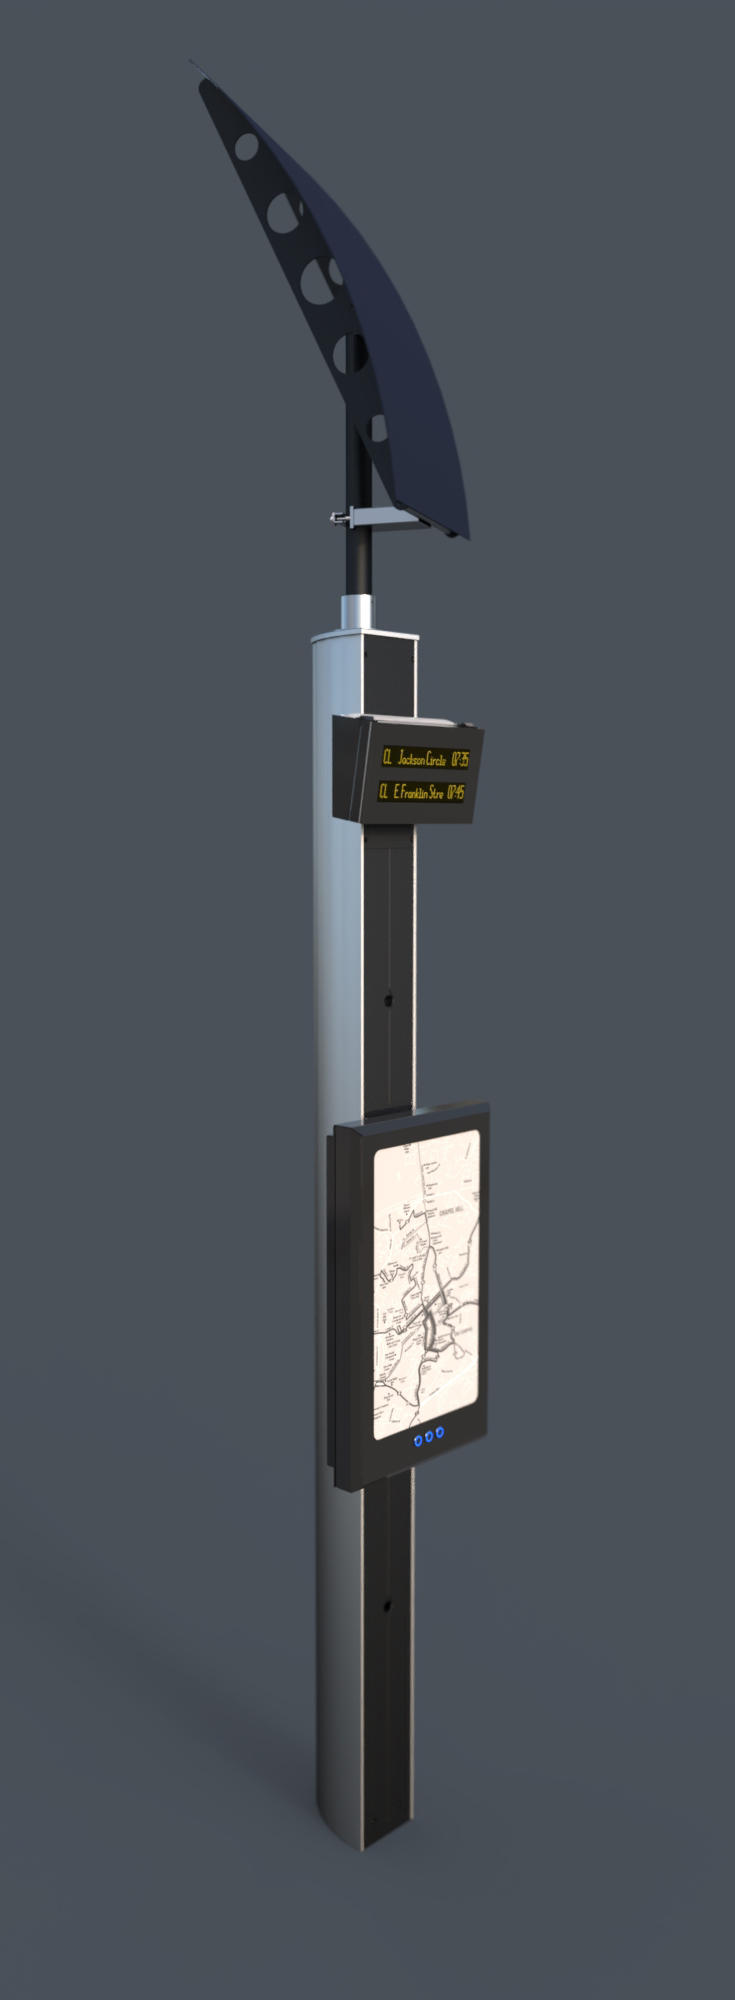 Solar powered generated bus stop stand with interactive map. Concept by Nexus Alpha LPS